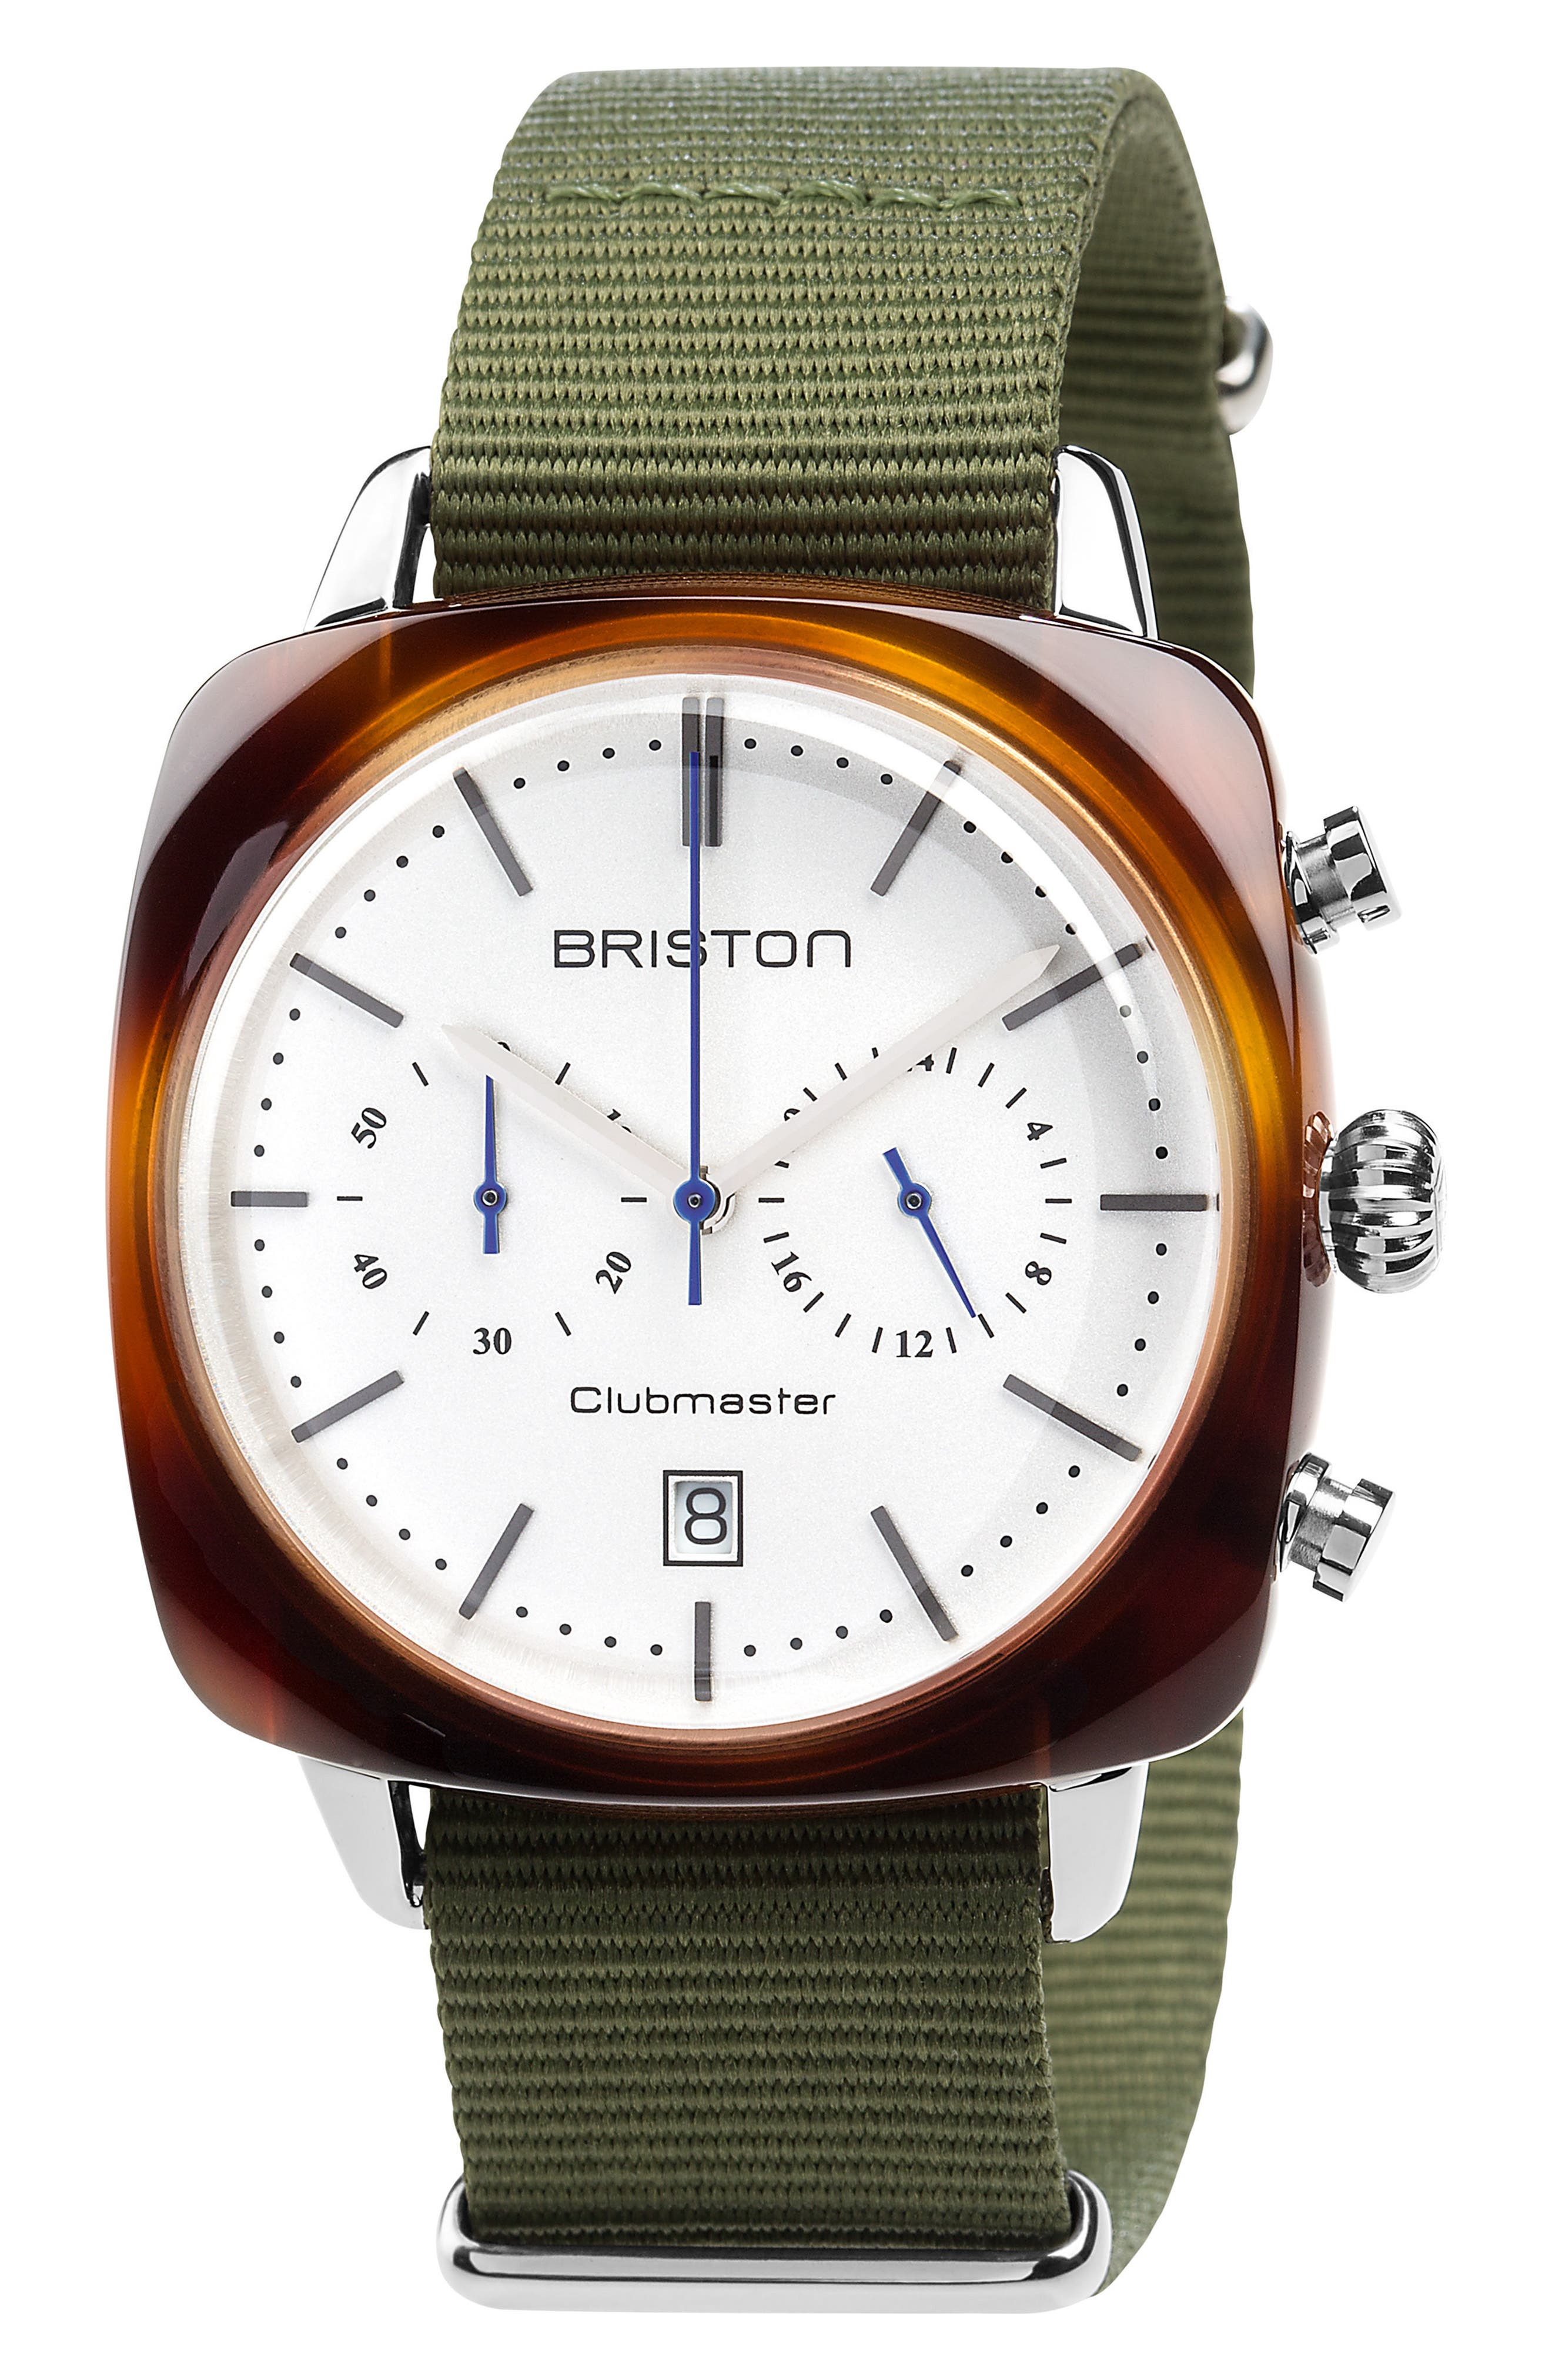 Alternate Image 1 Selected - Briston Watches Clubmaster Vintage Chronograph Nylon Strap Watch, 40mm x 40mm